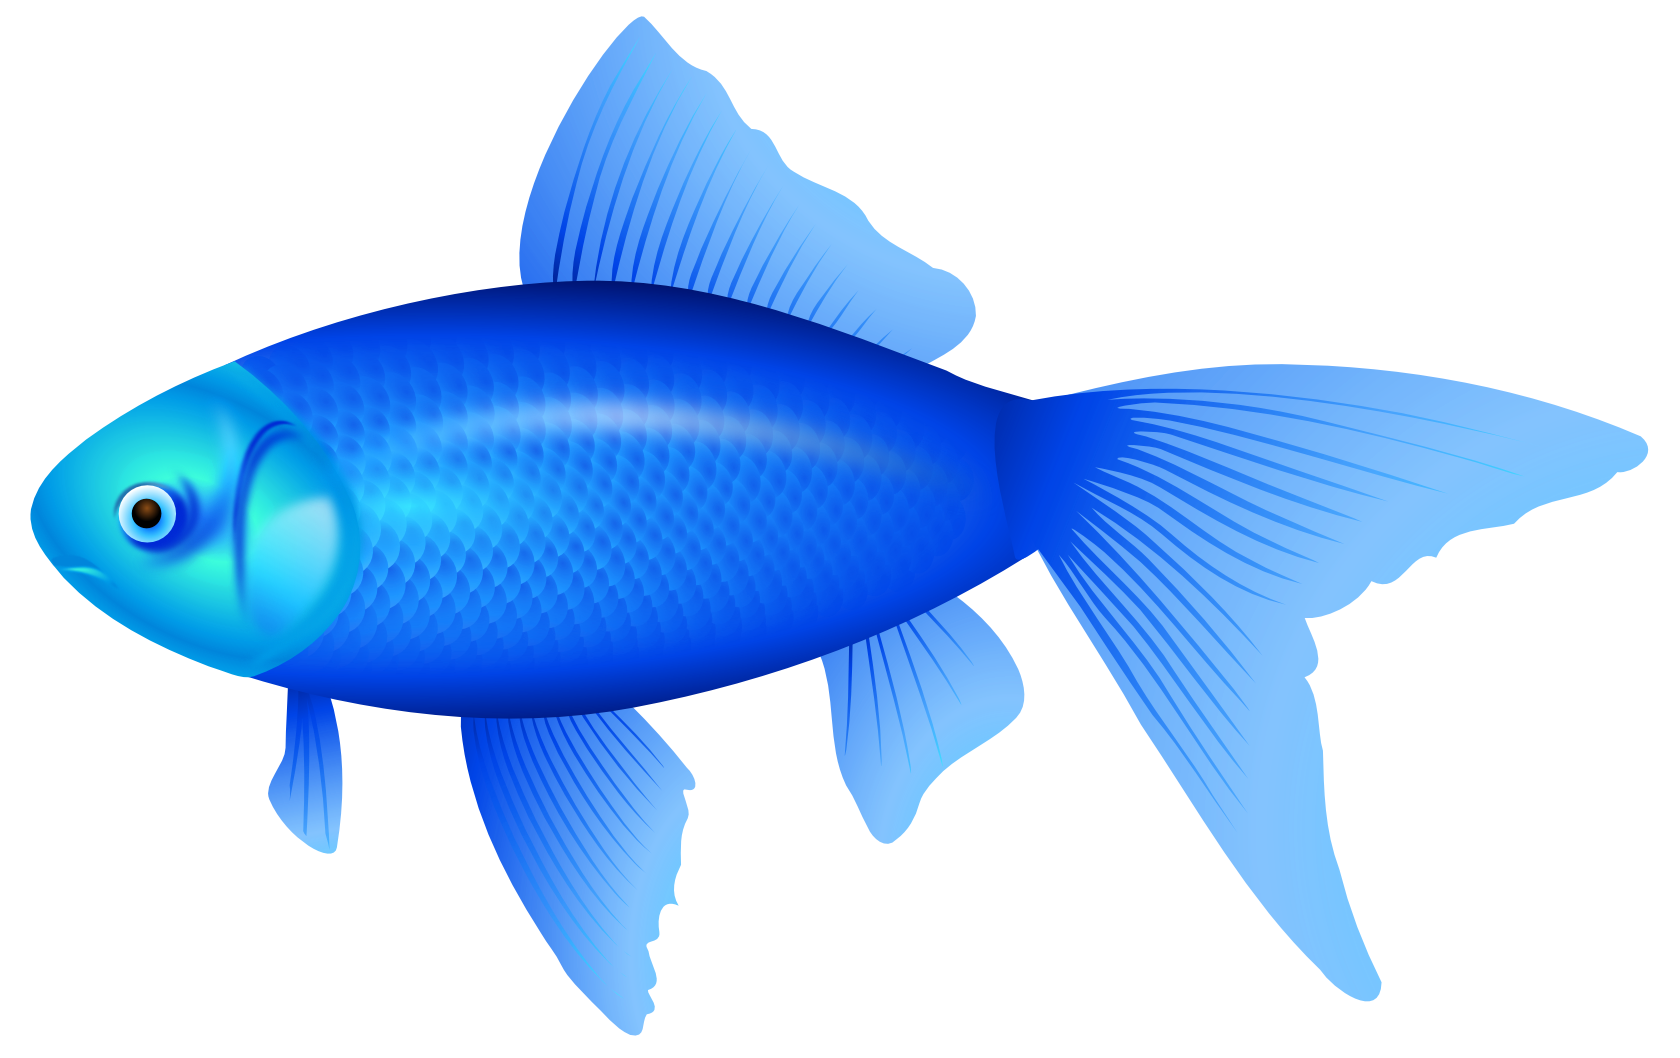 Fishing clipart fishing pond. Blue fish png image